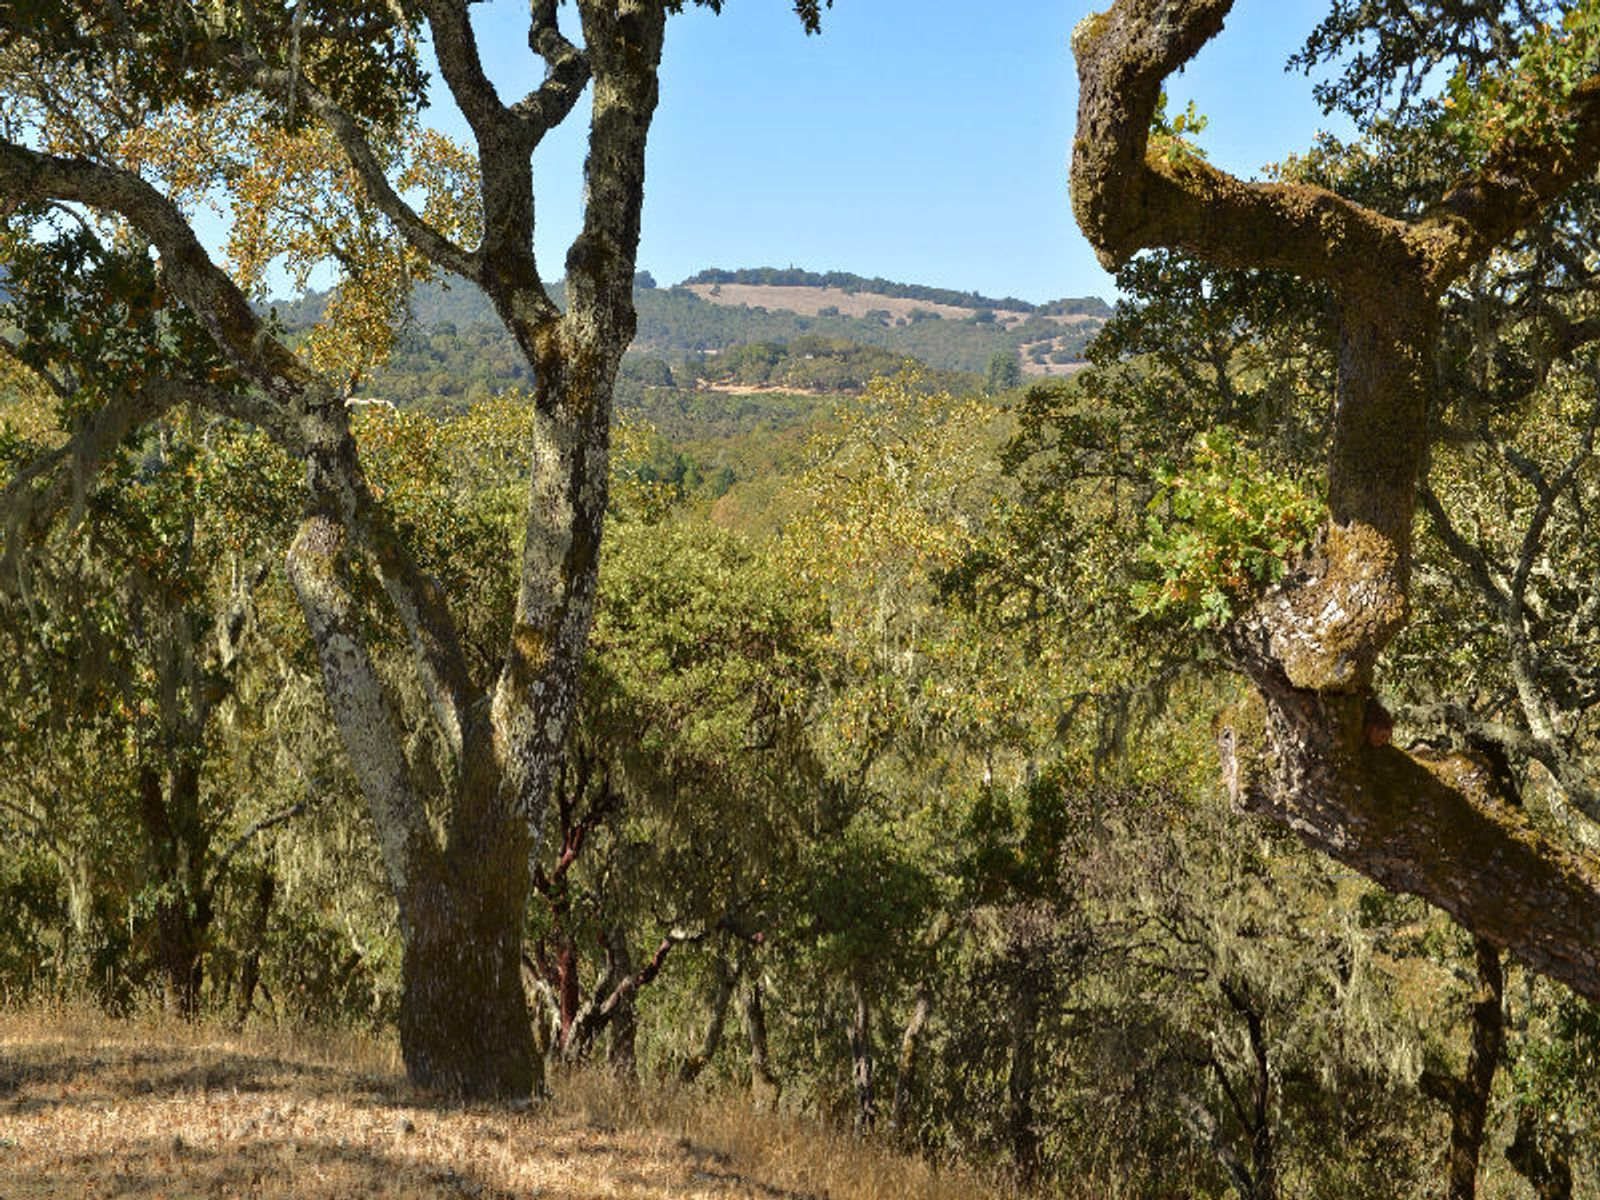 Views of Sonoma Mountain